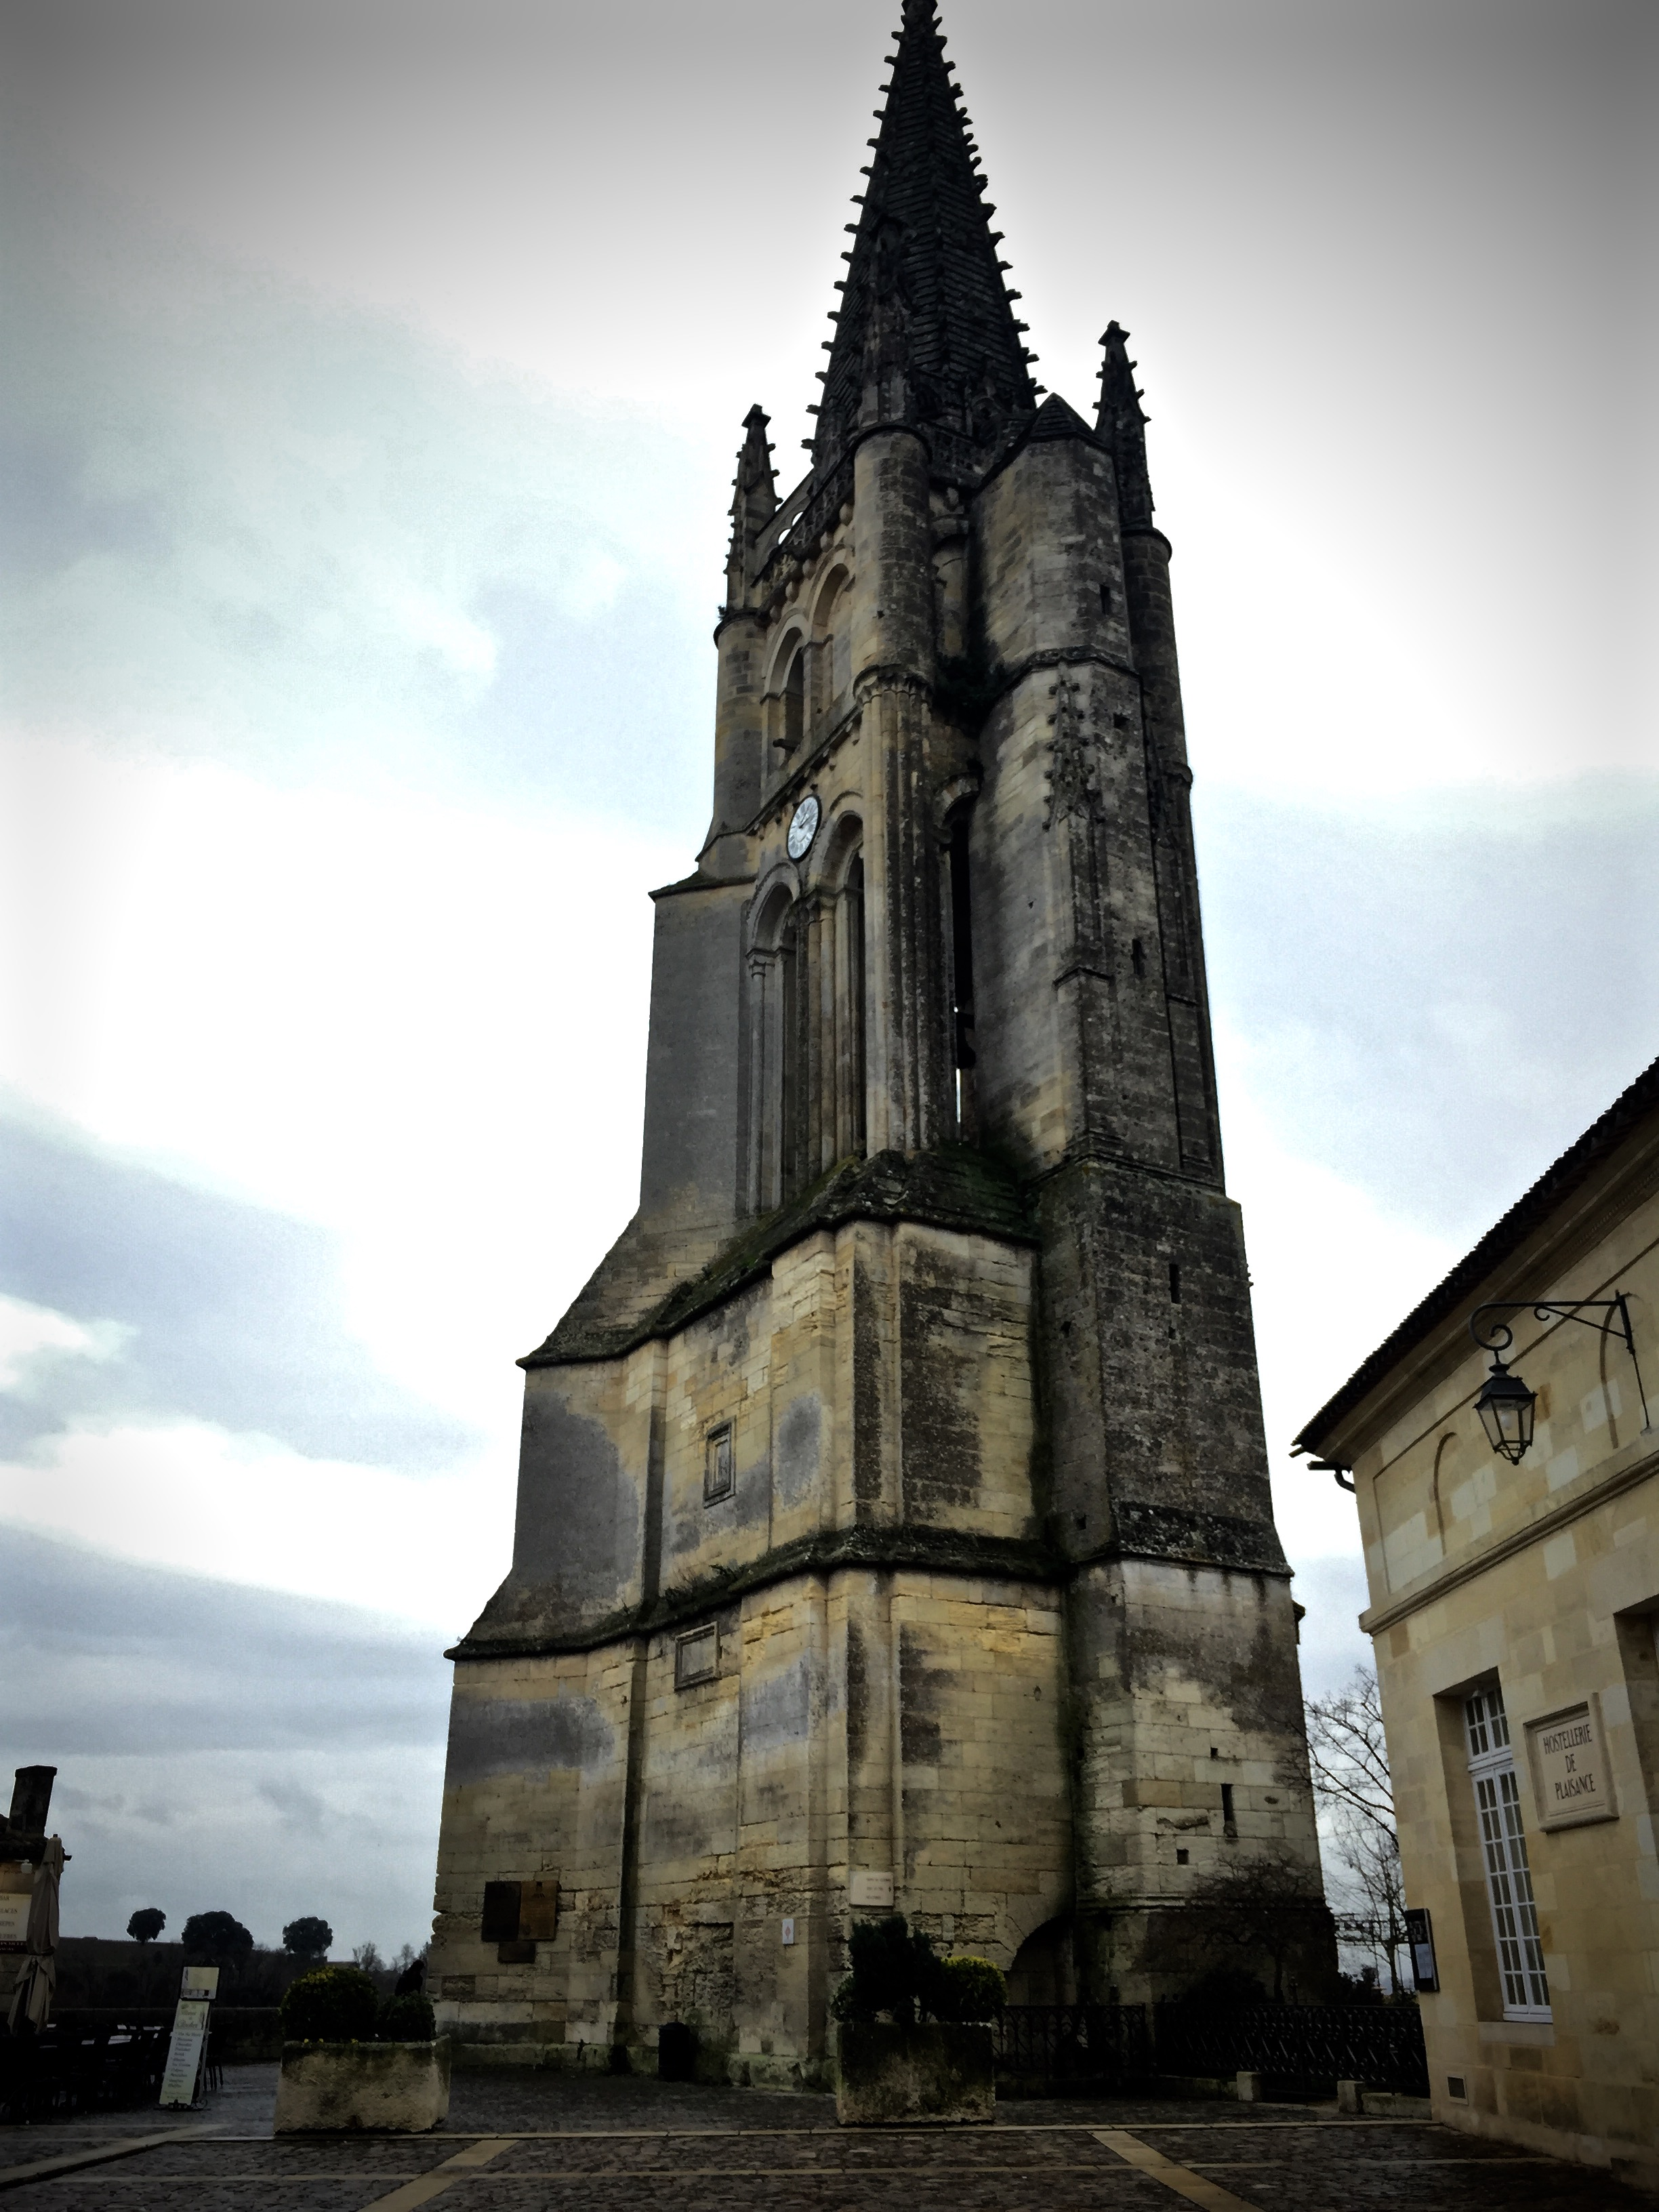 Monolithic church bell tower. A stunning view from the top, and some beautiful architecture as well.